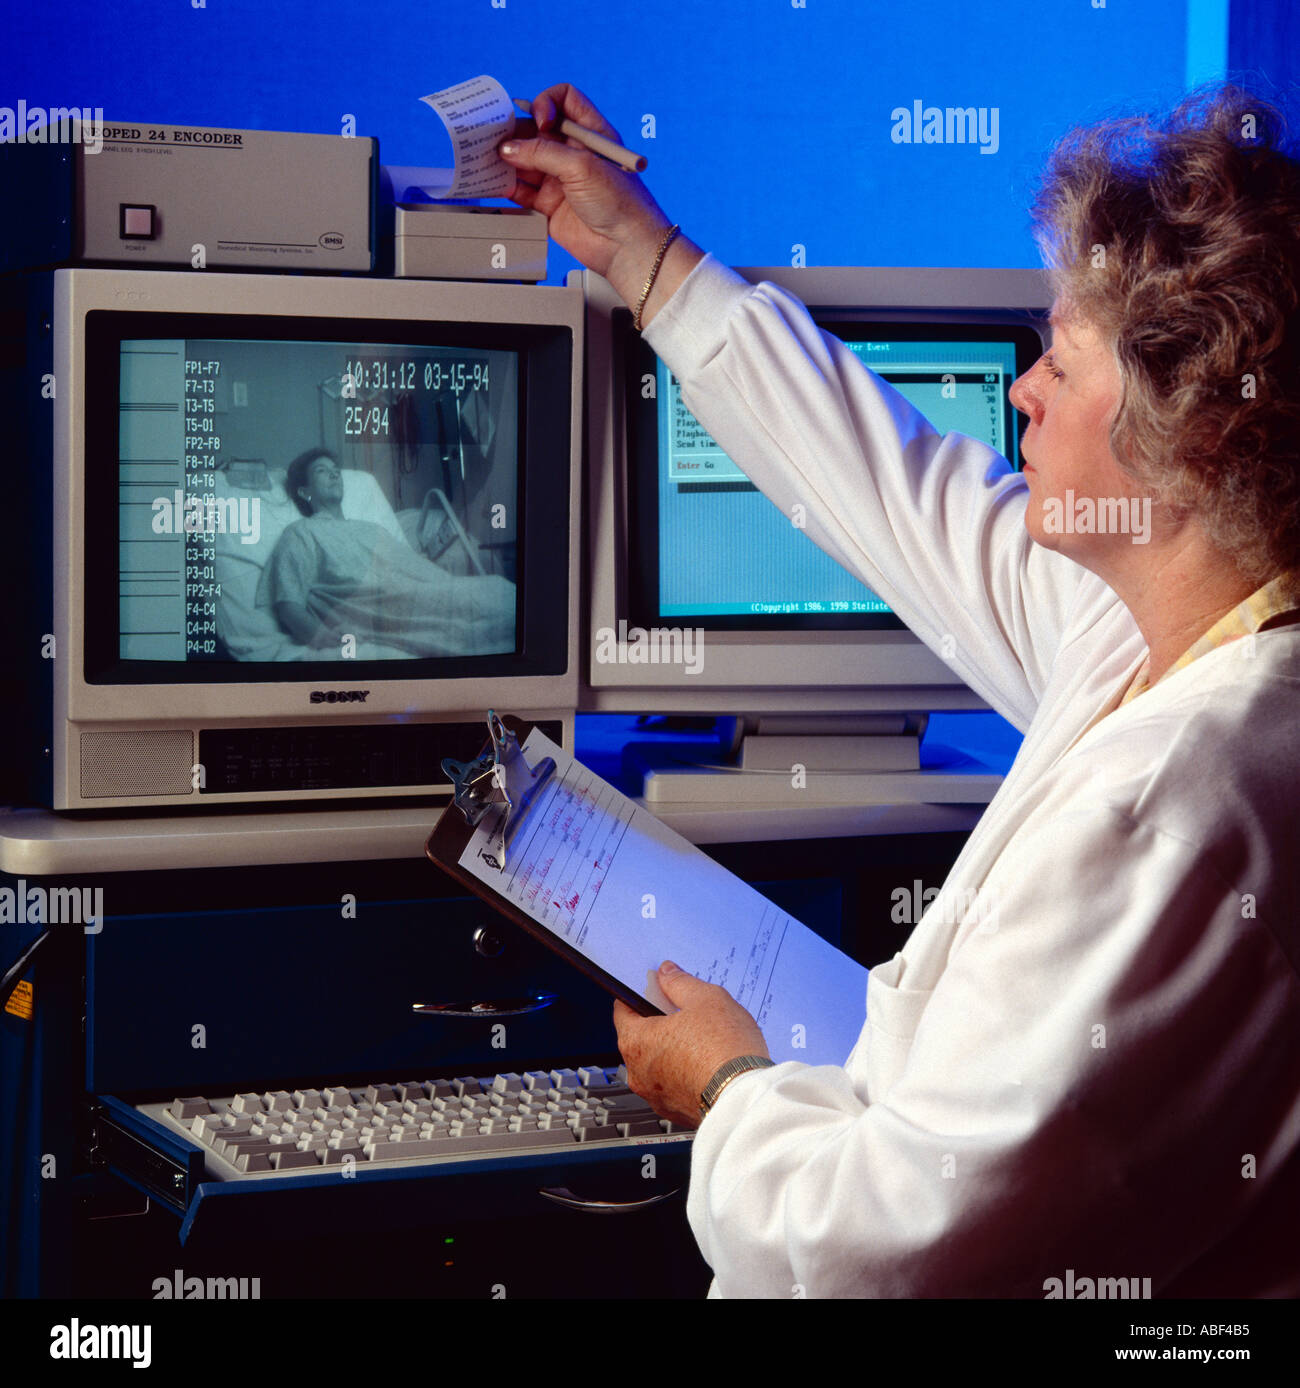 Sleep disorder research; A researcher uses a CRT monitor to remotely observe a woman during research into sleep disorders / USA. - Stock Image